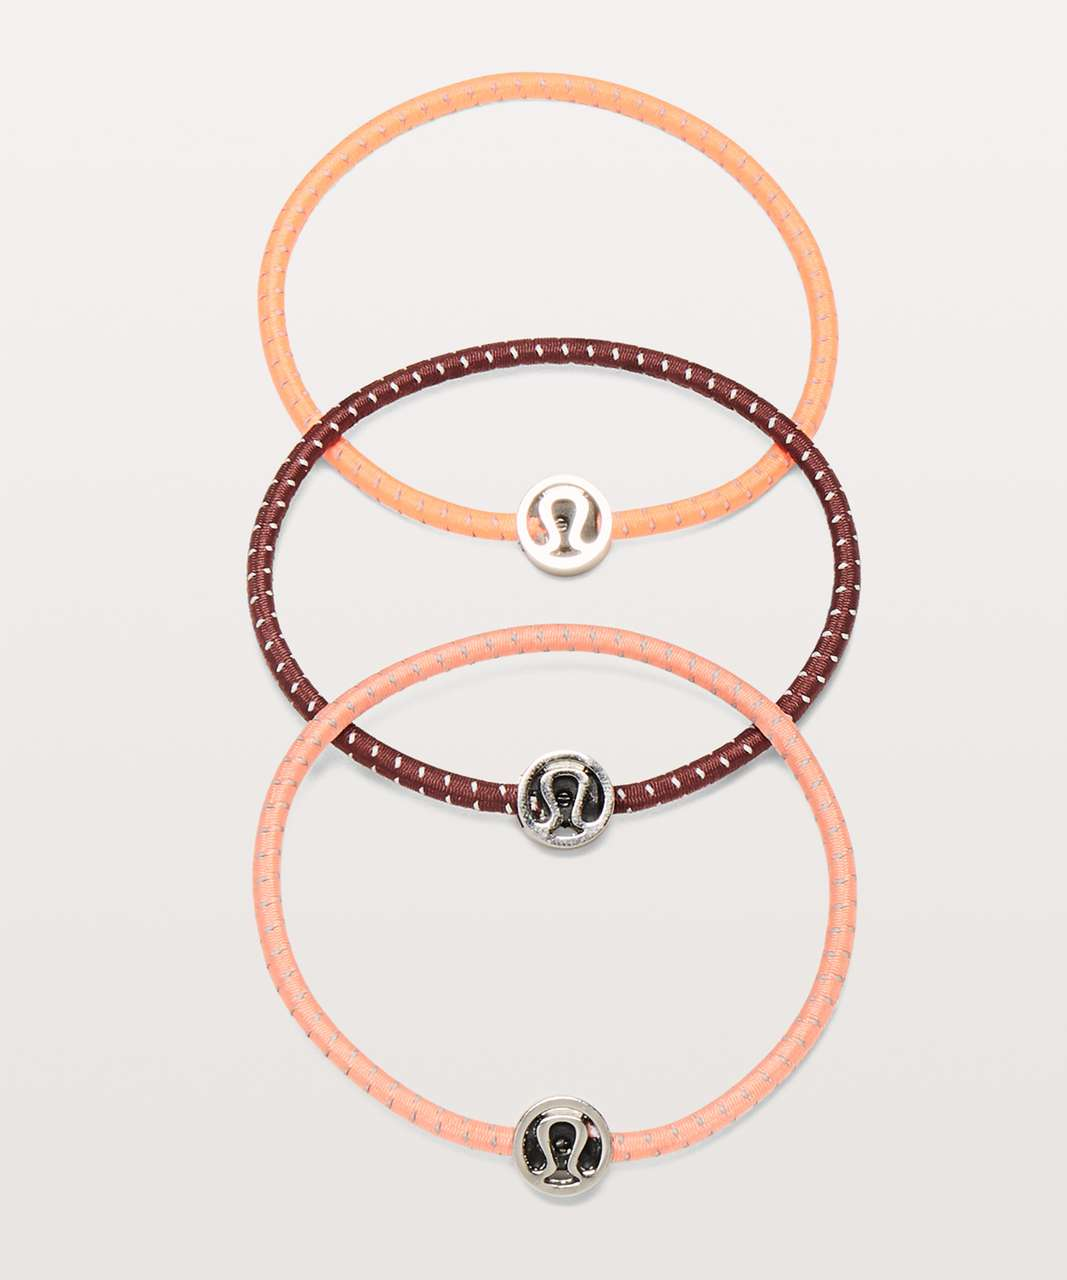 Lululemon Glow On Hair Ties - Redwood / Sunset / Light Coral